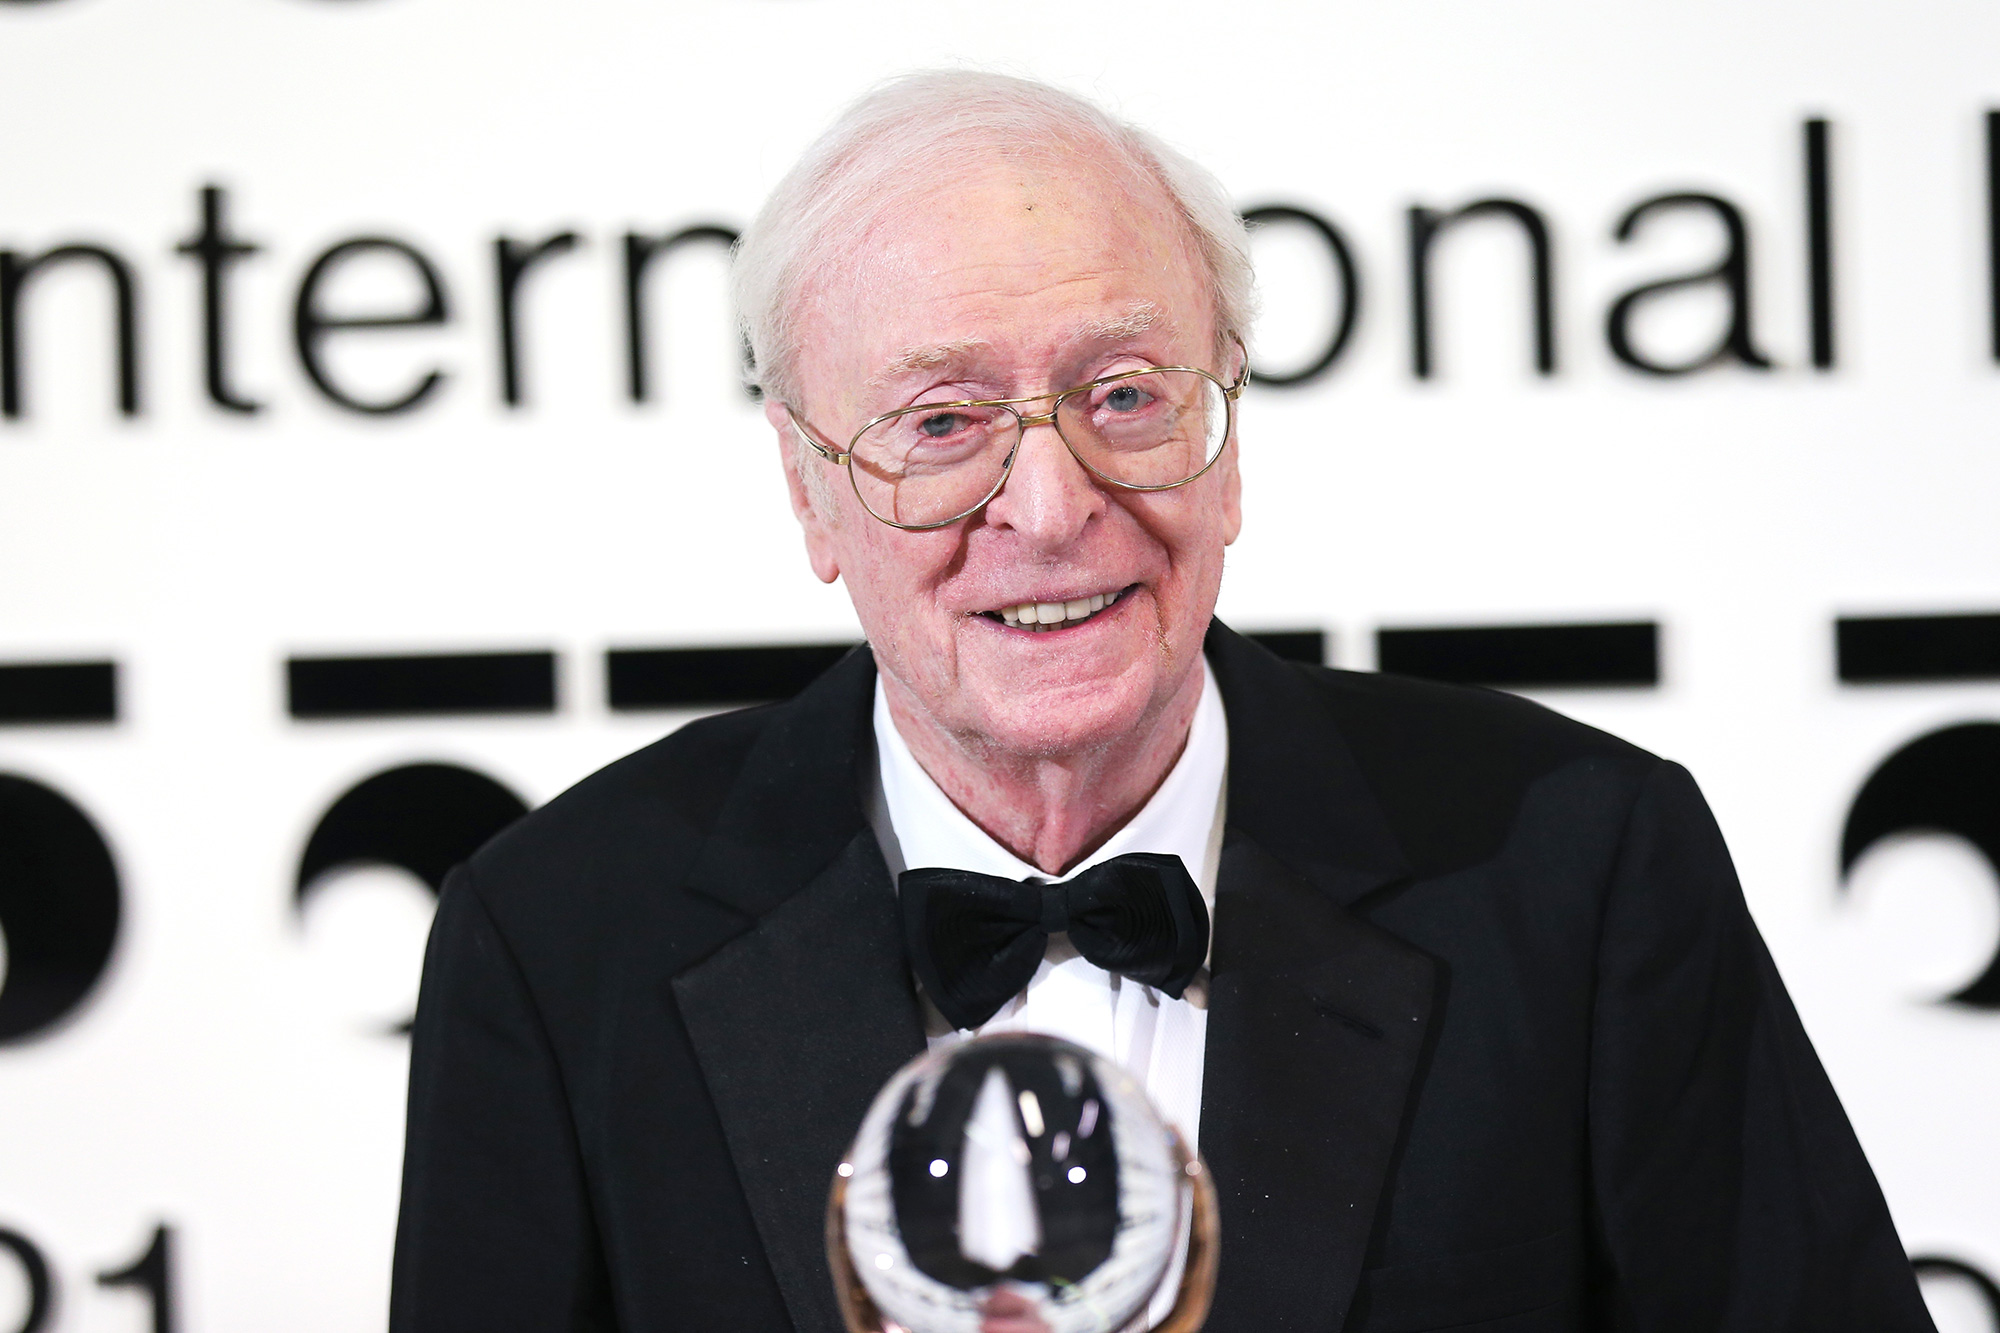 Sir Michael Caine is awarded with the Crystal Globe for Outstanding Contribution to World Cinema at the 55th Karlovy Vary International Film Festival opening on August 20, 2021 in Karlovy Vary (Karlsbad), Czech Republic